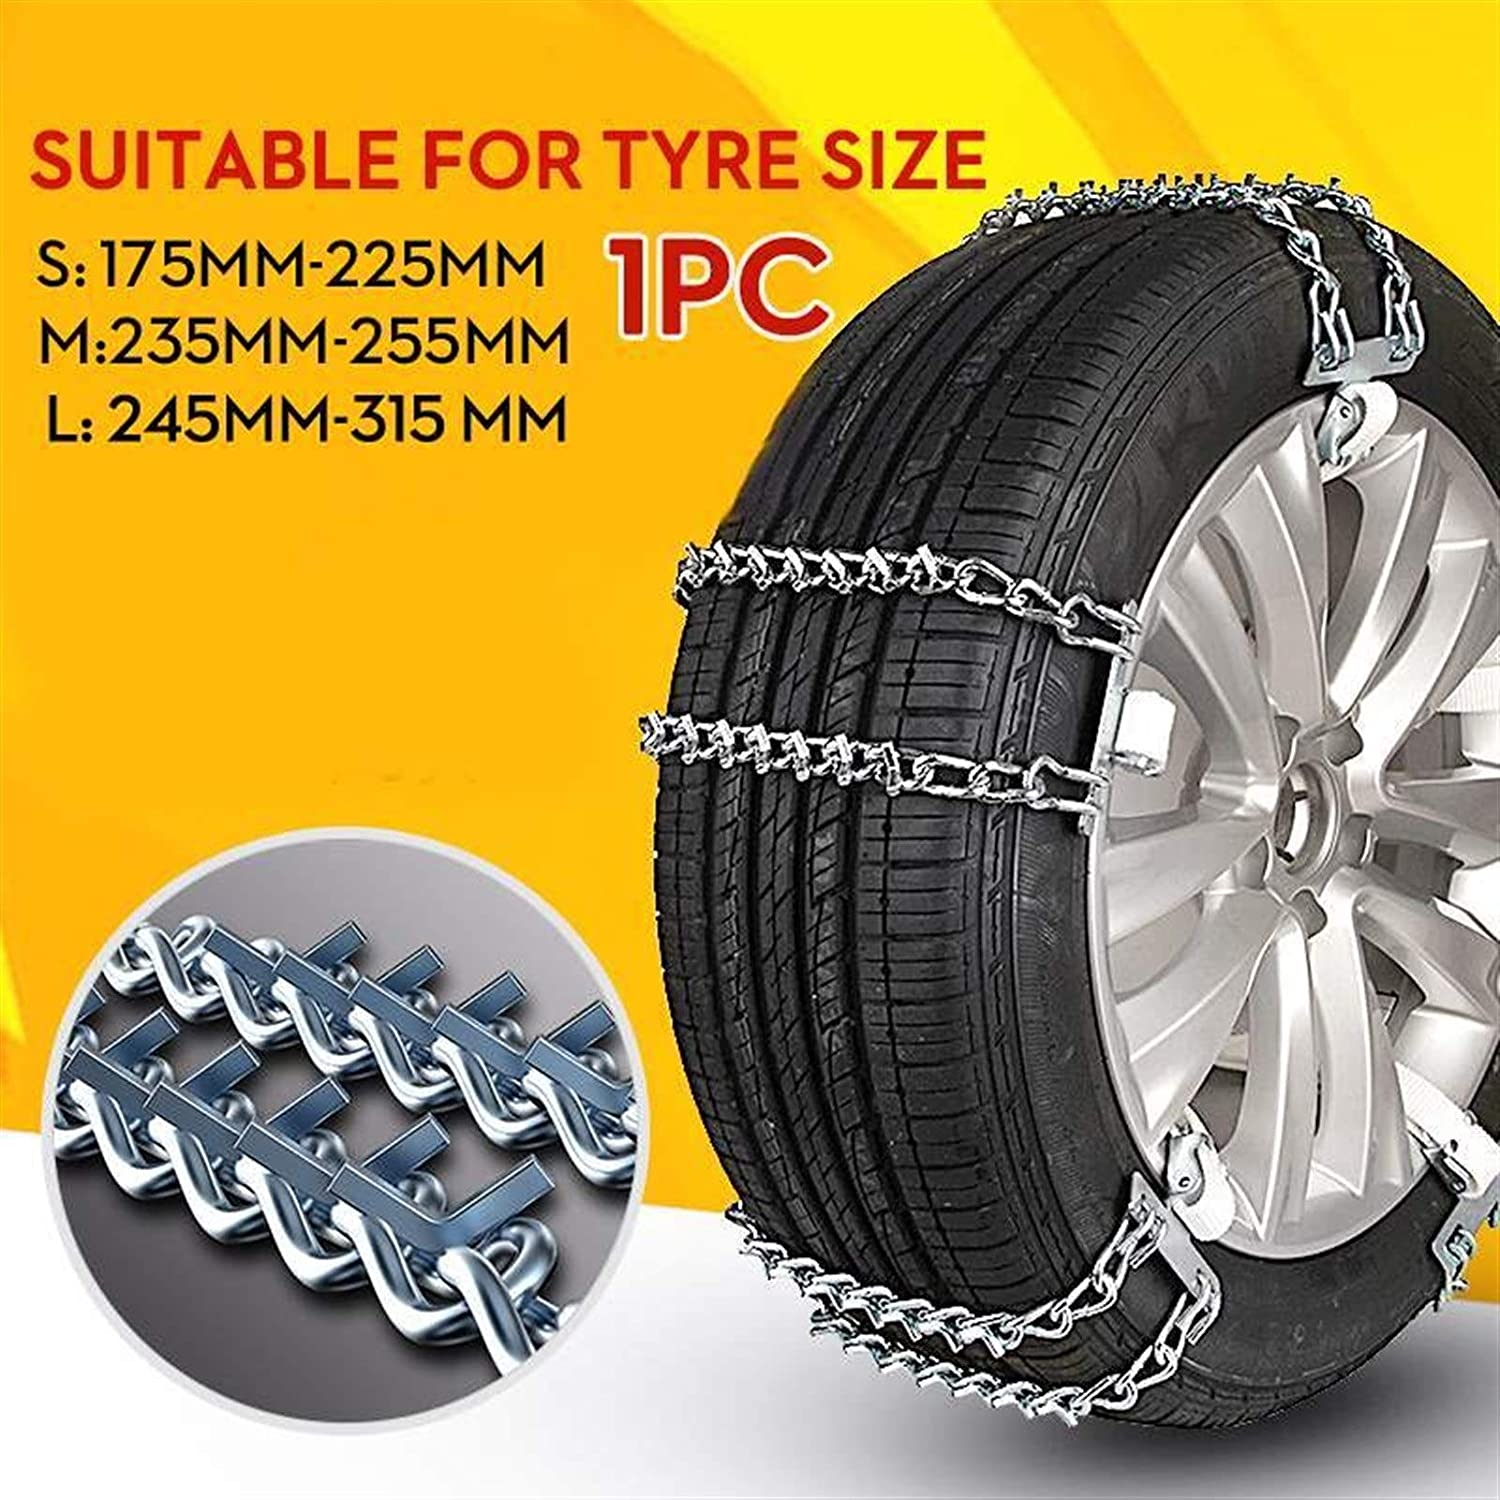 3 Size Car Snow Chains Tire Tire Wheel Anti-Skid Chain Adjustable Wear-Resistant Steel Winter Use Ice Snow Mud Road Safety,Solid and Safe 117 (Color Name : L 245 to 315mm)